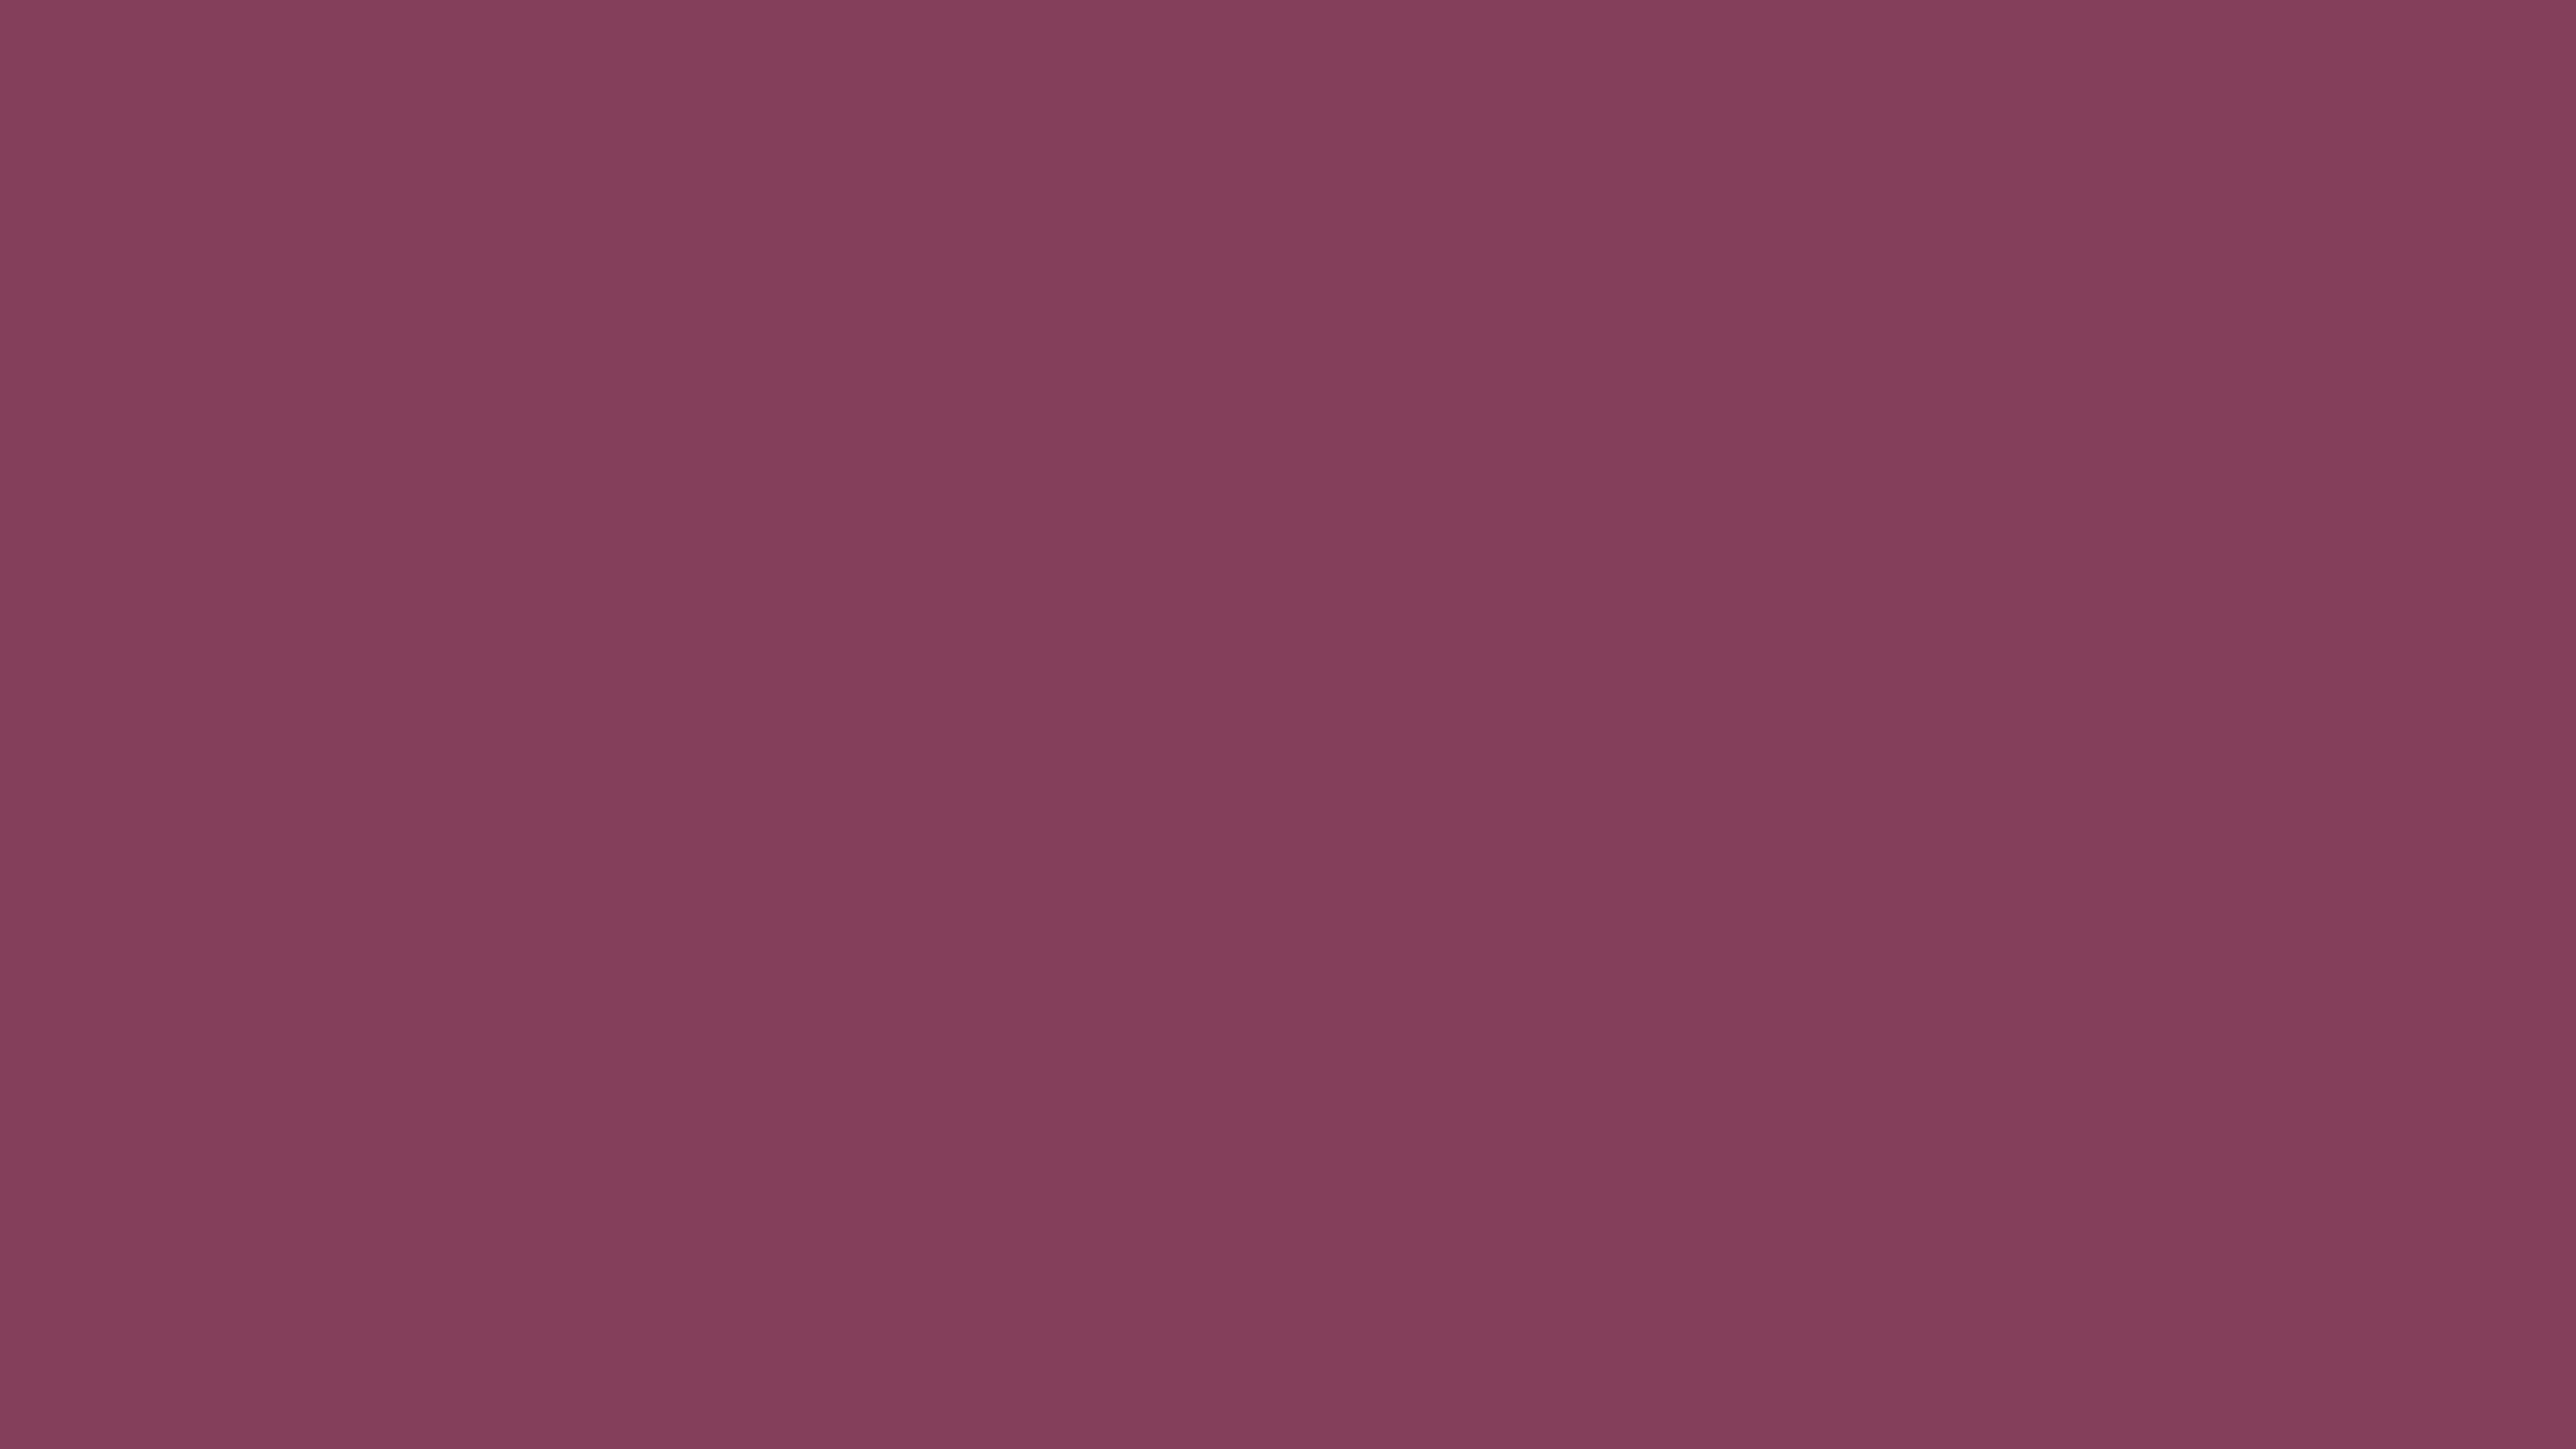 4096x2304 Deep Ruby Solid Color Background